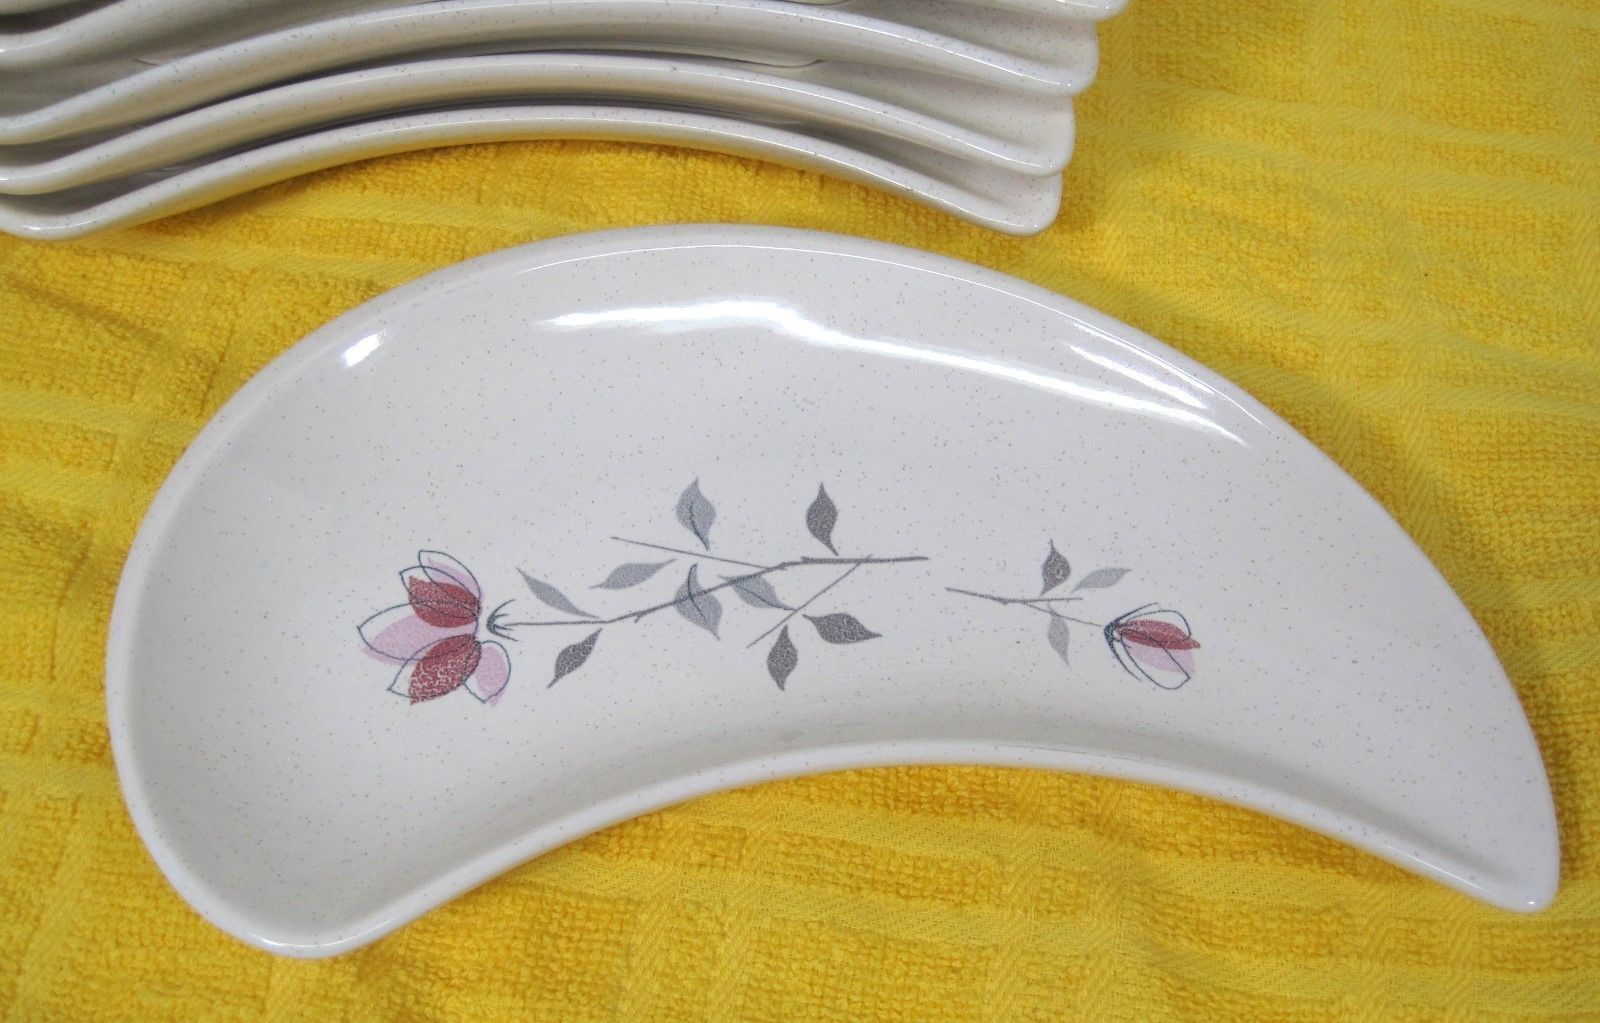 Franciscan Duet 1956-1961 Crescent Salad Plate Pink Rose Design 2 Back Marks